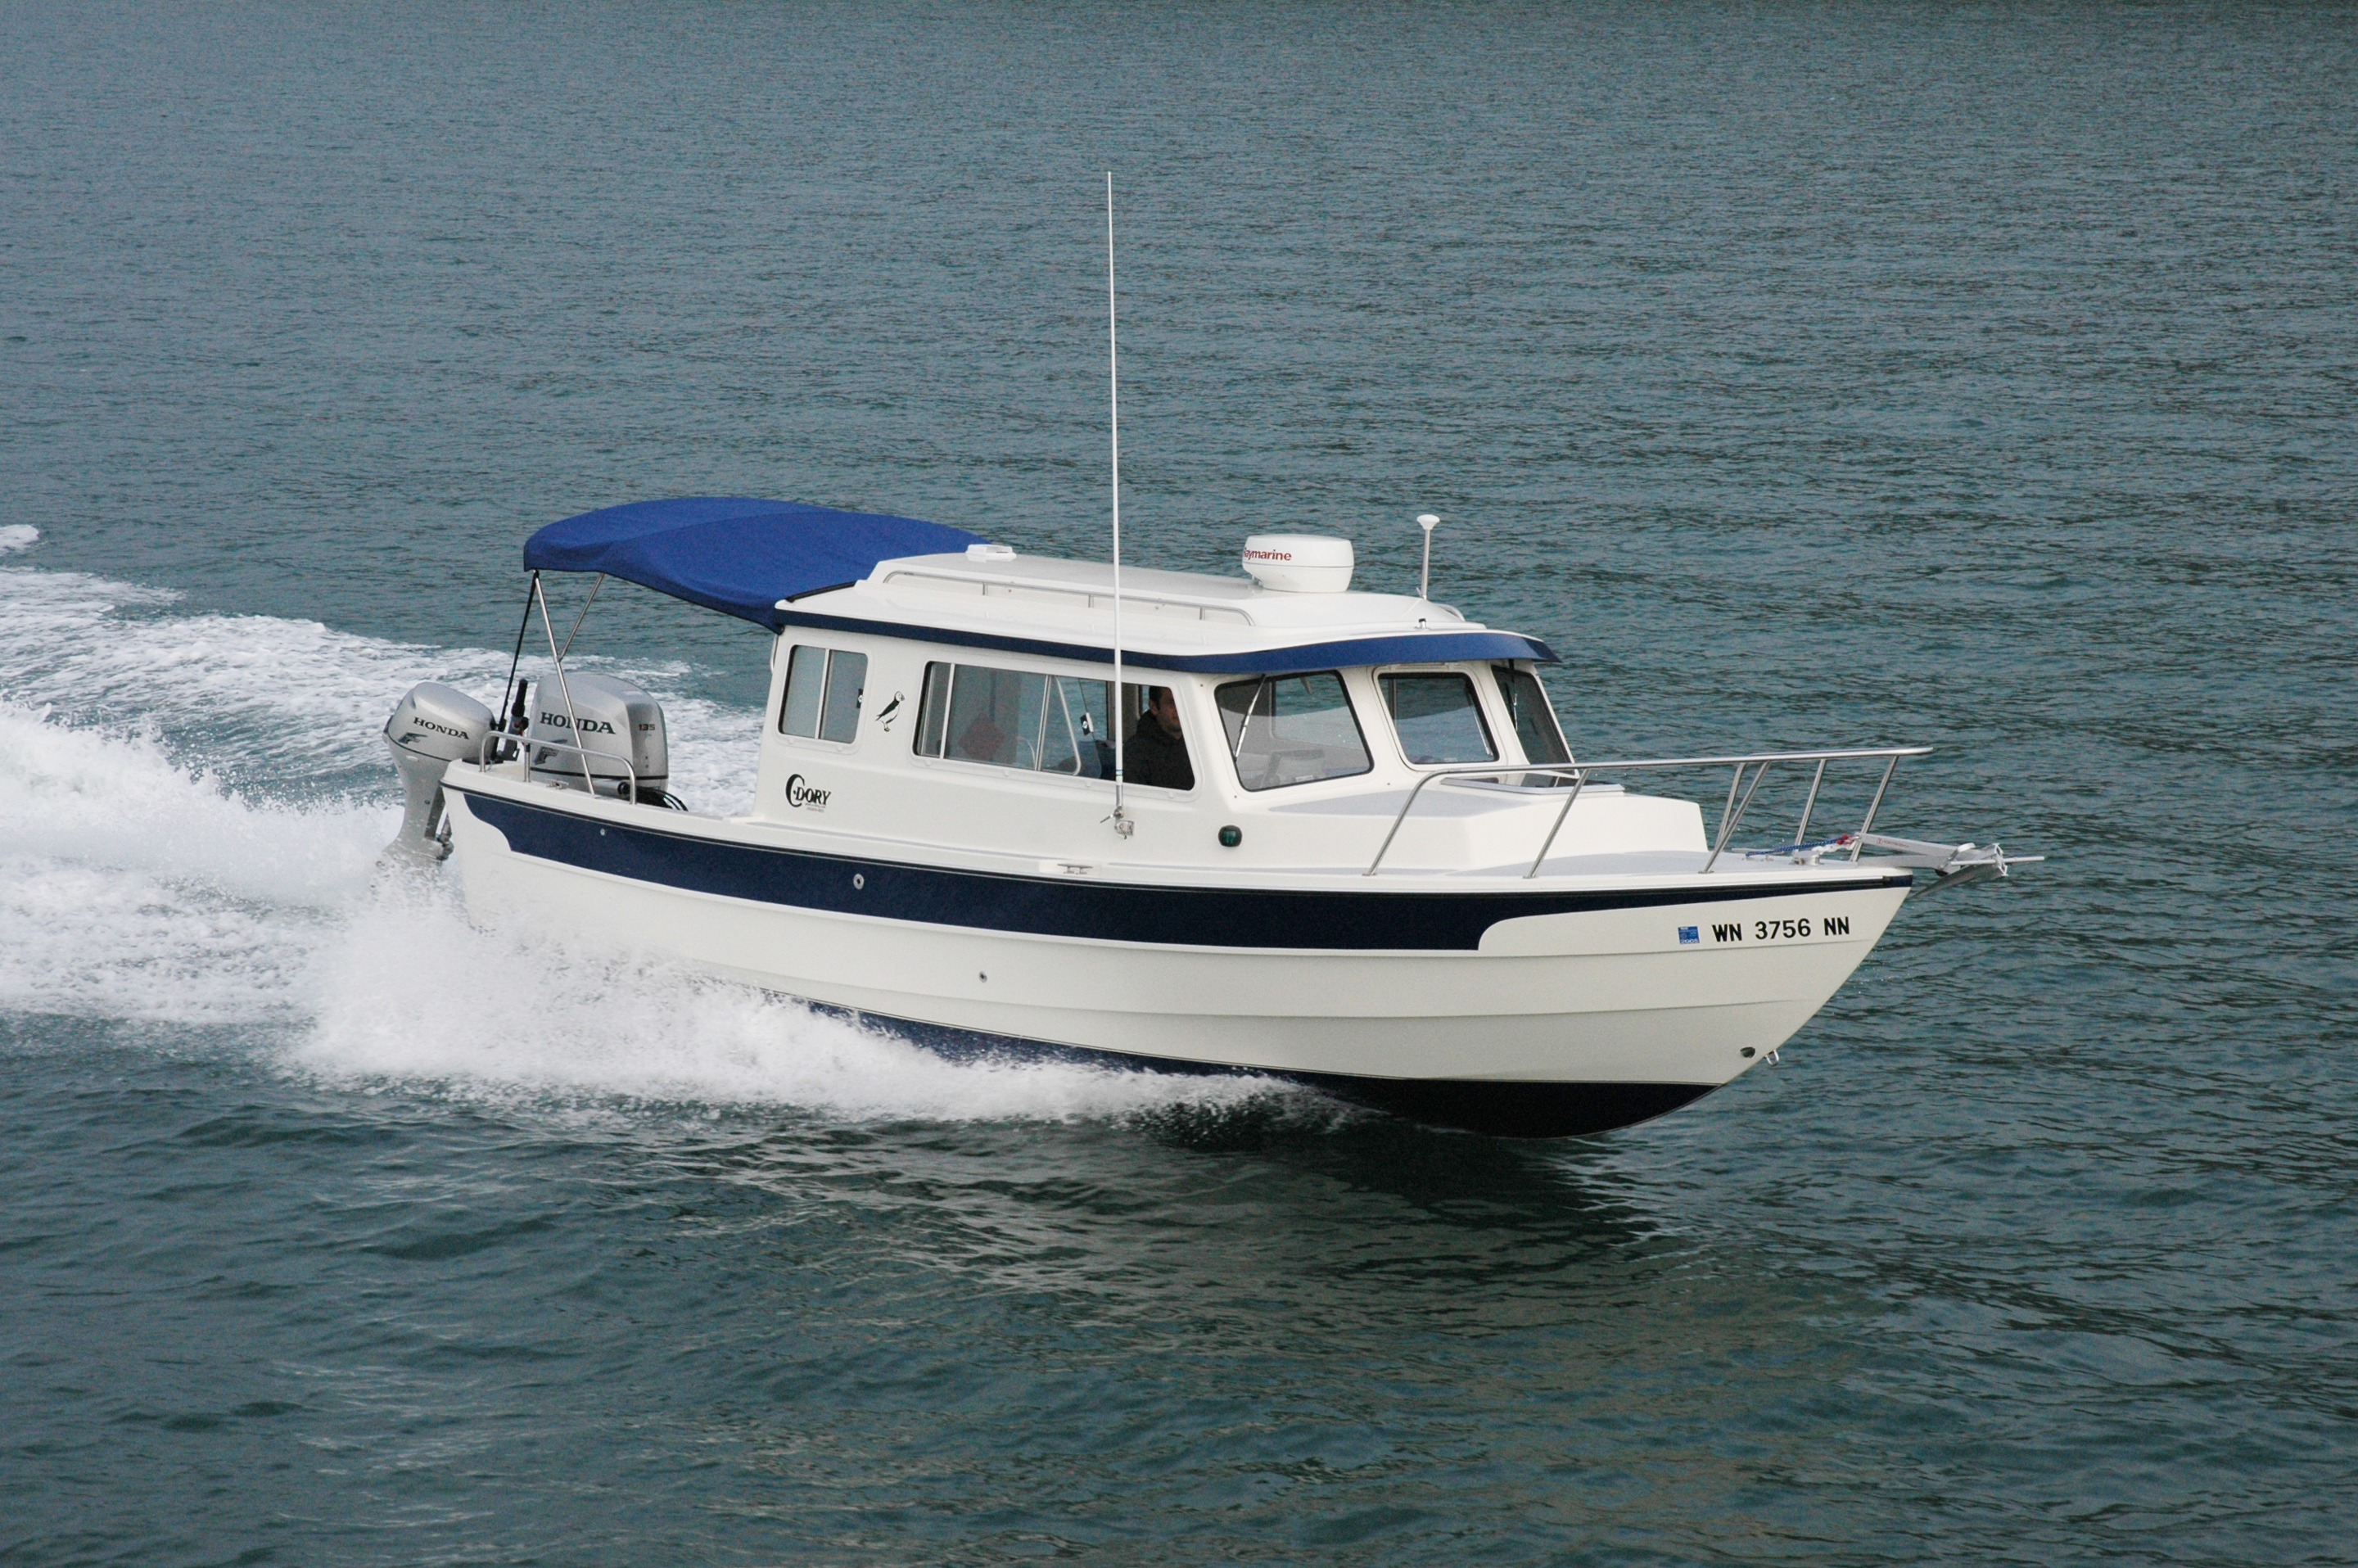 Our 25' Cruiser Boat | C-Dory Boats